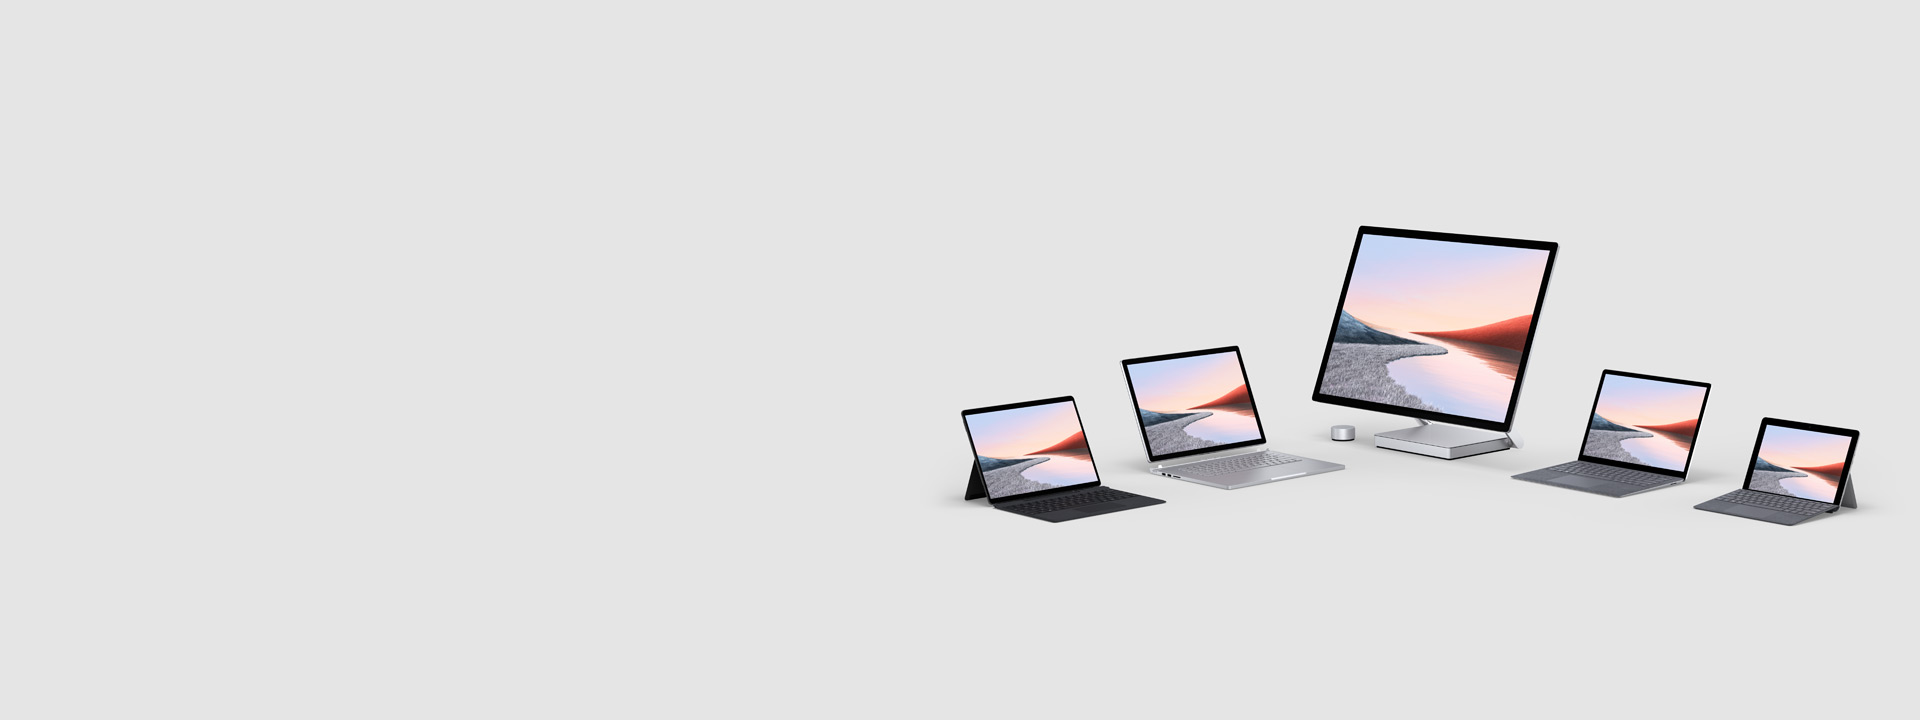 Diversi computer Surface tra cui Surface Pro 7, Surface Pro X , Surface Book 2, Surface Studio 2 e Surface Go